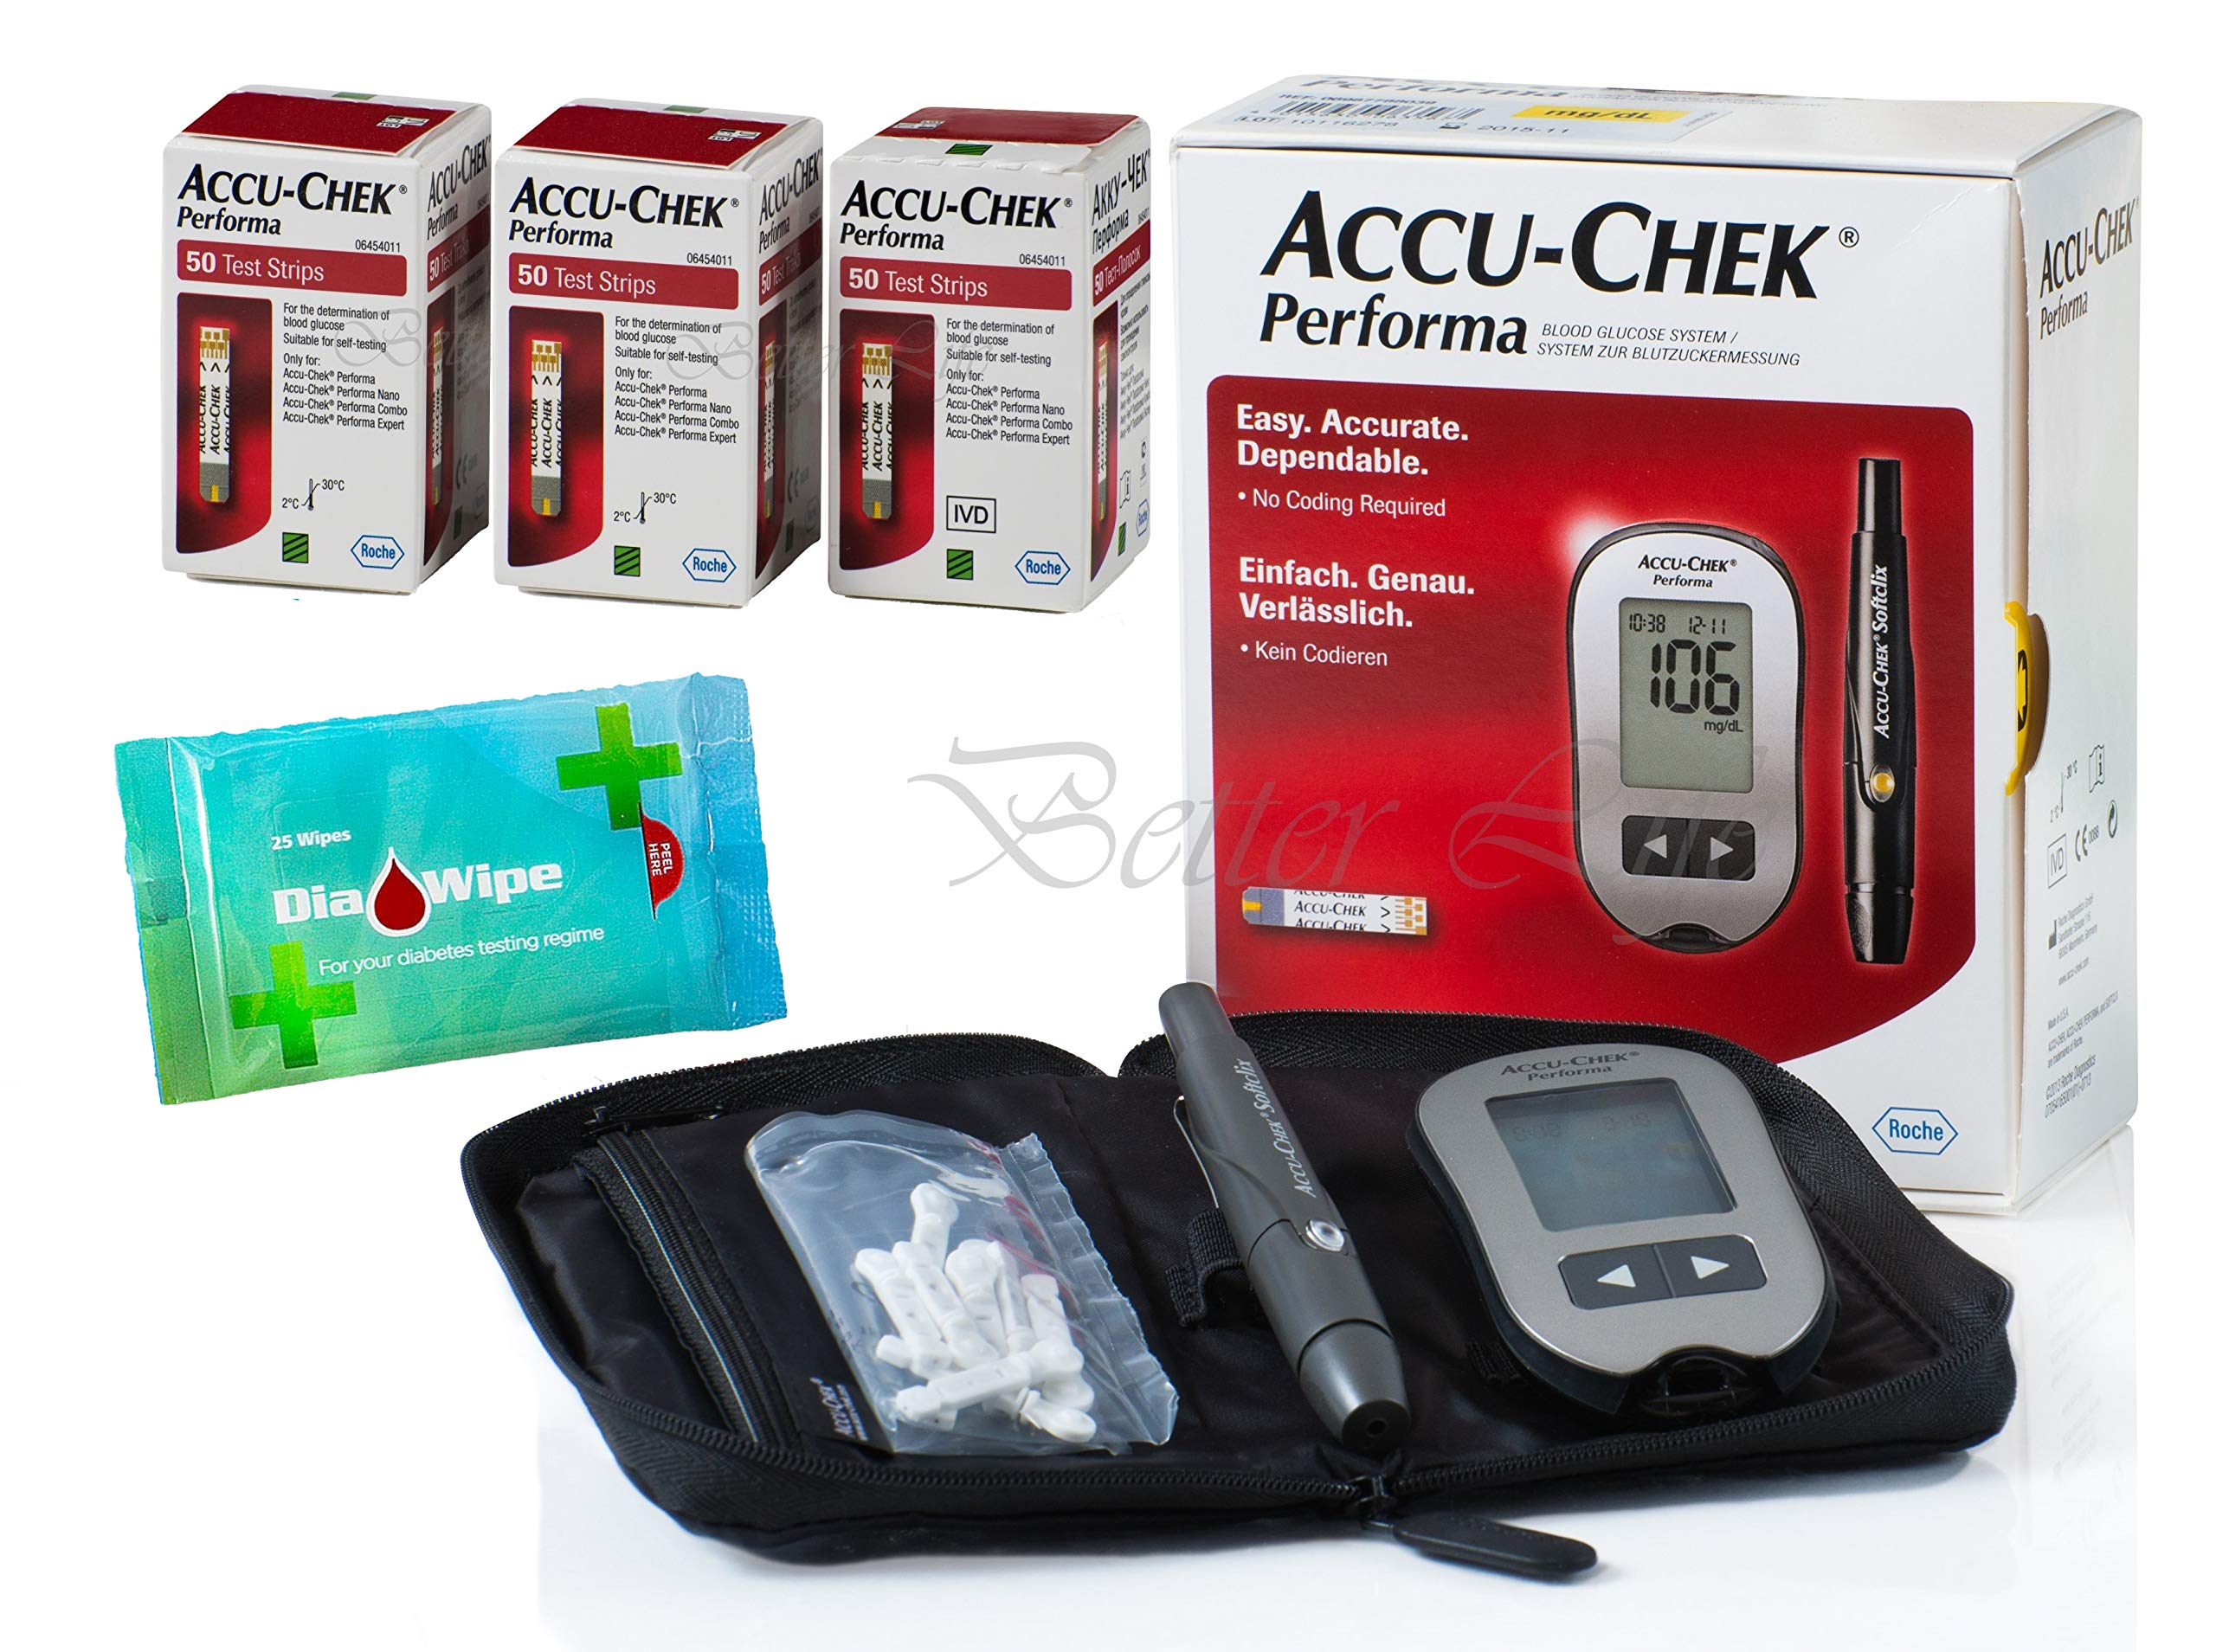 Roche 150 Test Strips Accu-Chek Performa Long Expiration Dates Bundle Glucometer Tester Monitor Kit + Accuchek Softclix + 10 Accu-Check Lancets + Diabetes DiaWipes Finger Accurate Blood Level Results